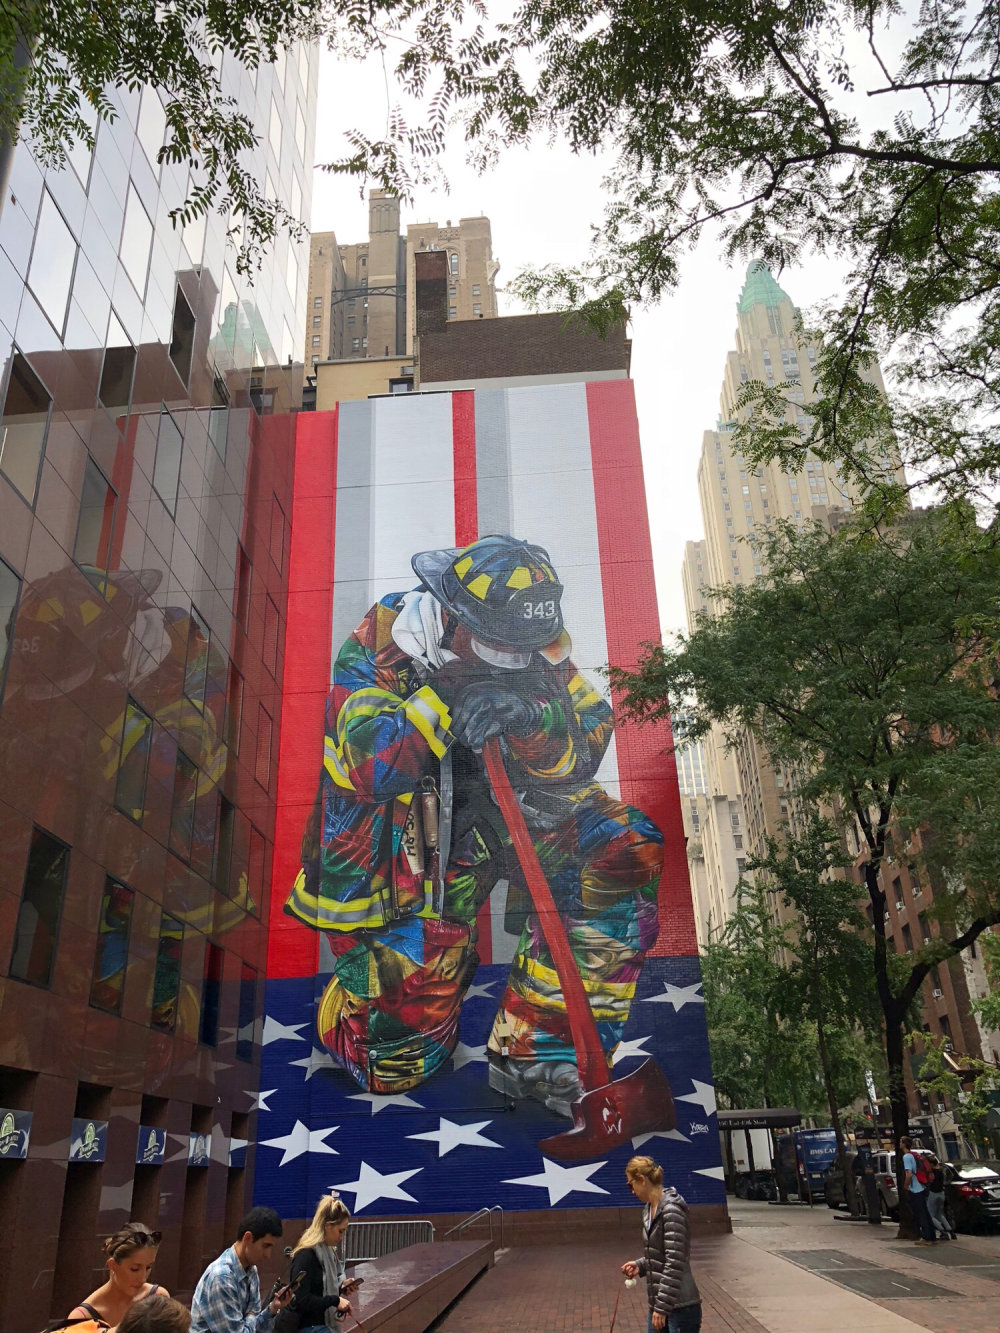 mural in New York by artist Eduardo Kobra